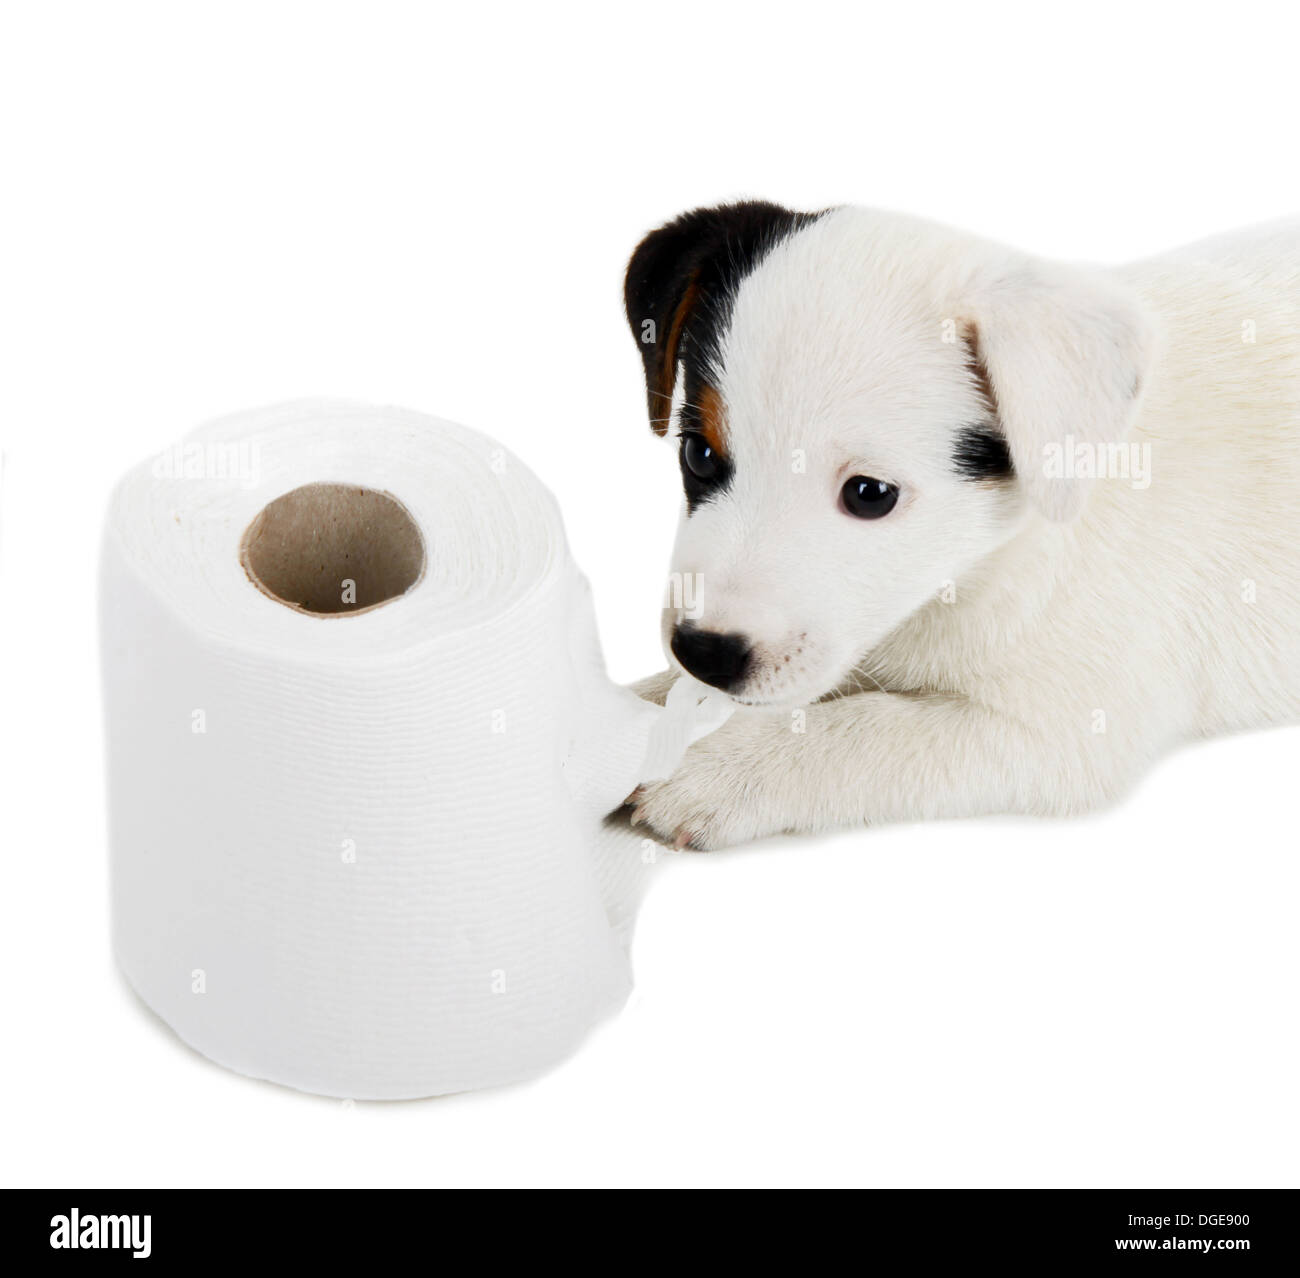 Jack Russell puppy caught playing in toilet paper - Stock Image